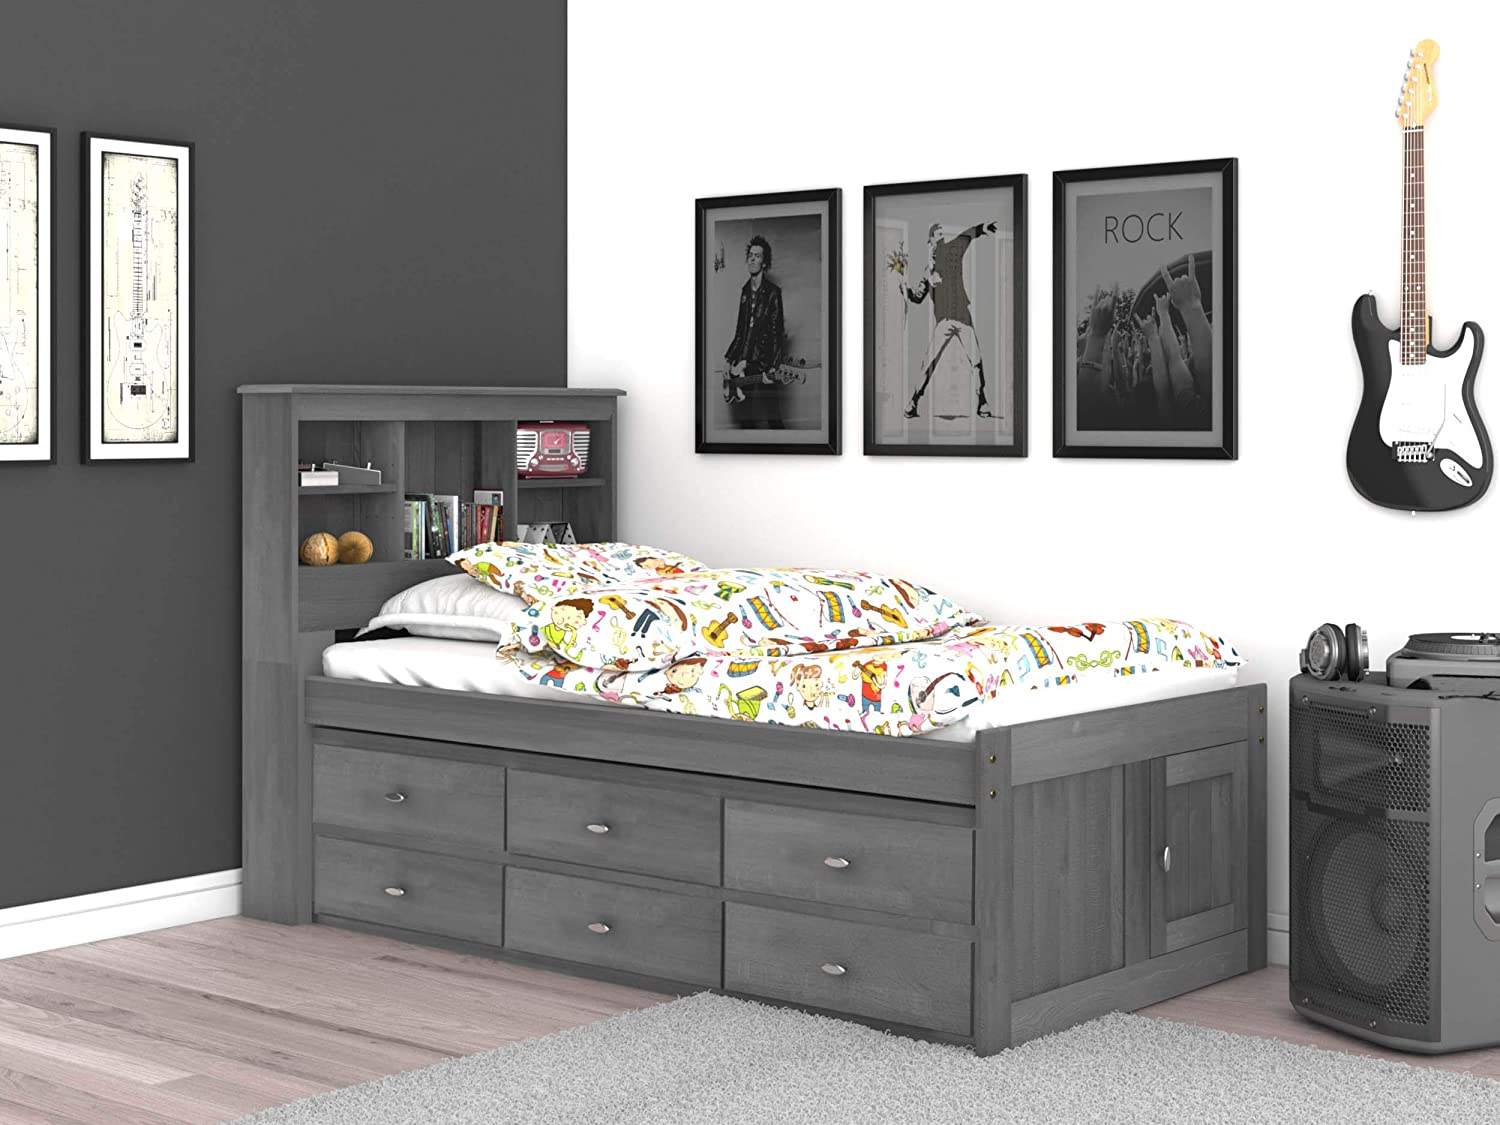 Discovery World Furniture Charcoal Twin Bookcase Bed with 6 Drawers